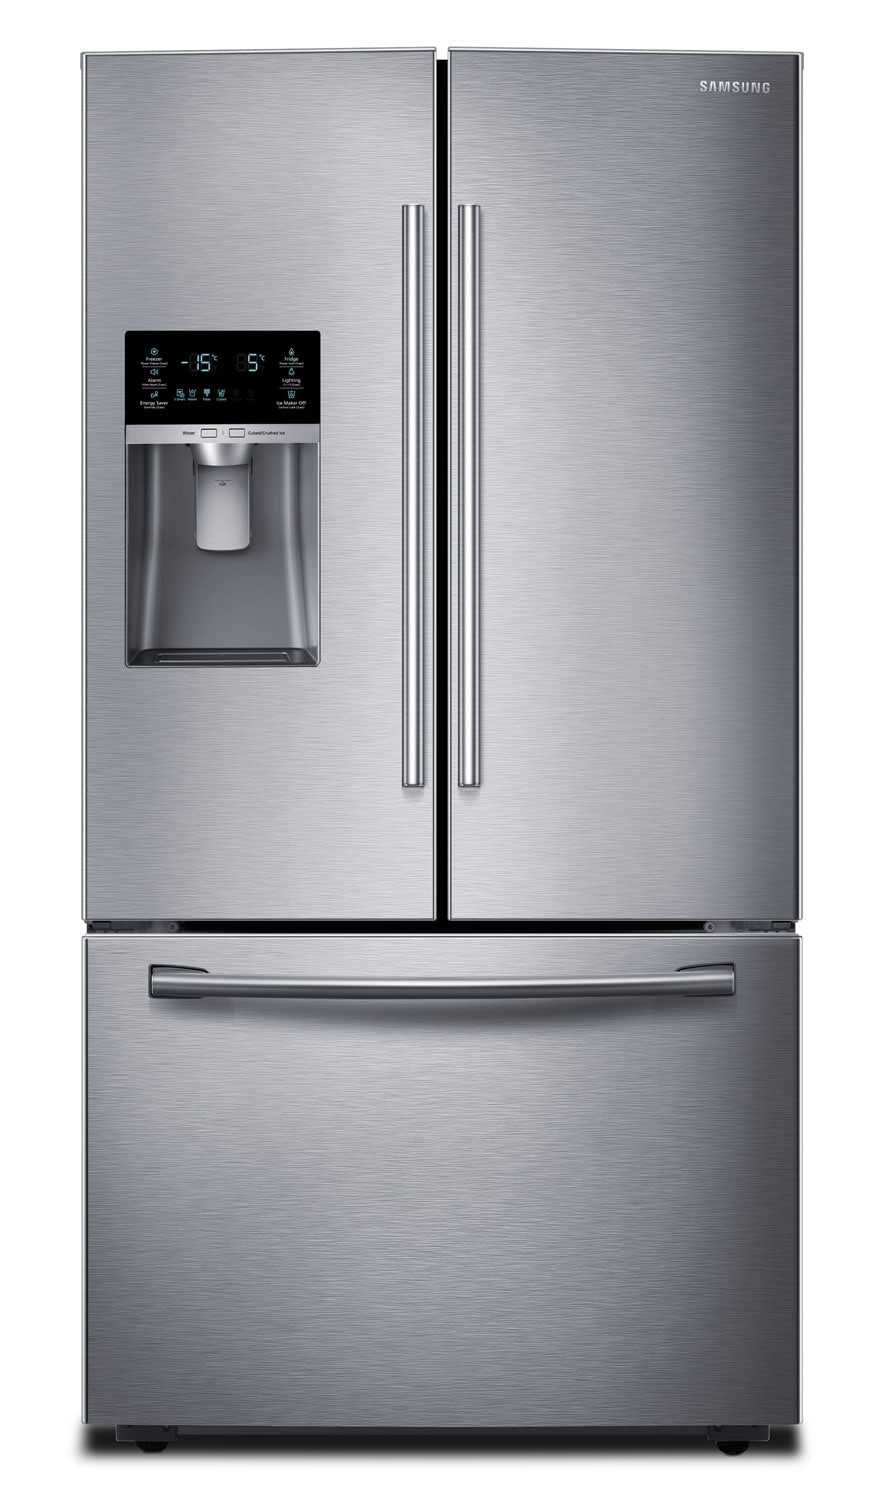 Samsung Stainless Steel French Door Refrigerator (22.5 Cu. Ft.) - RF23HCEDBSR